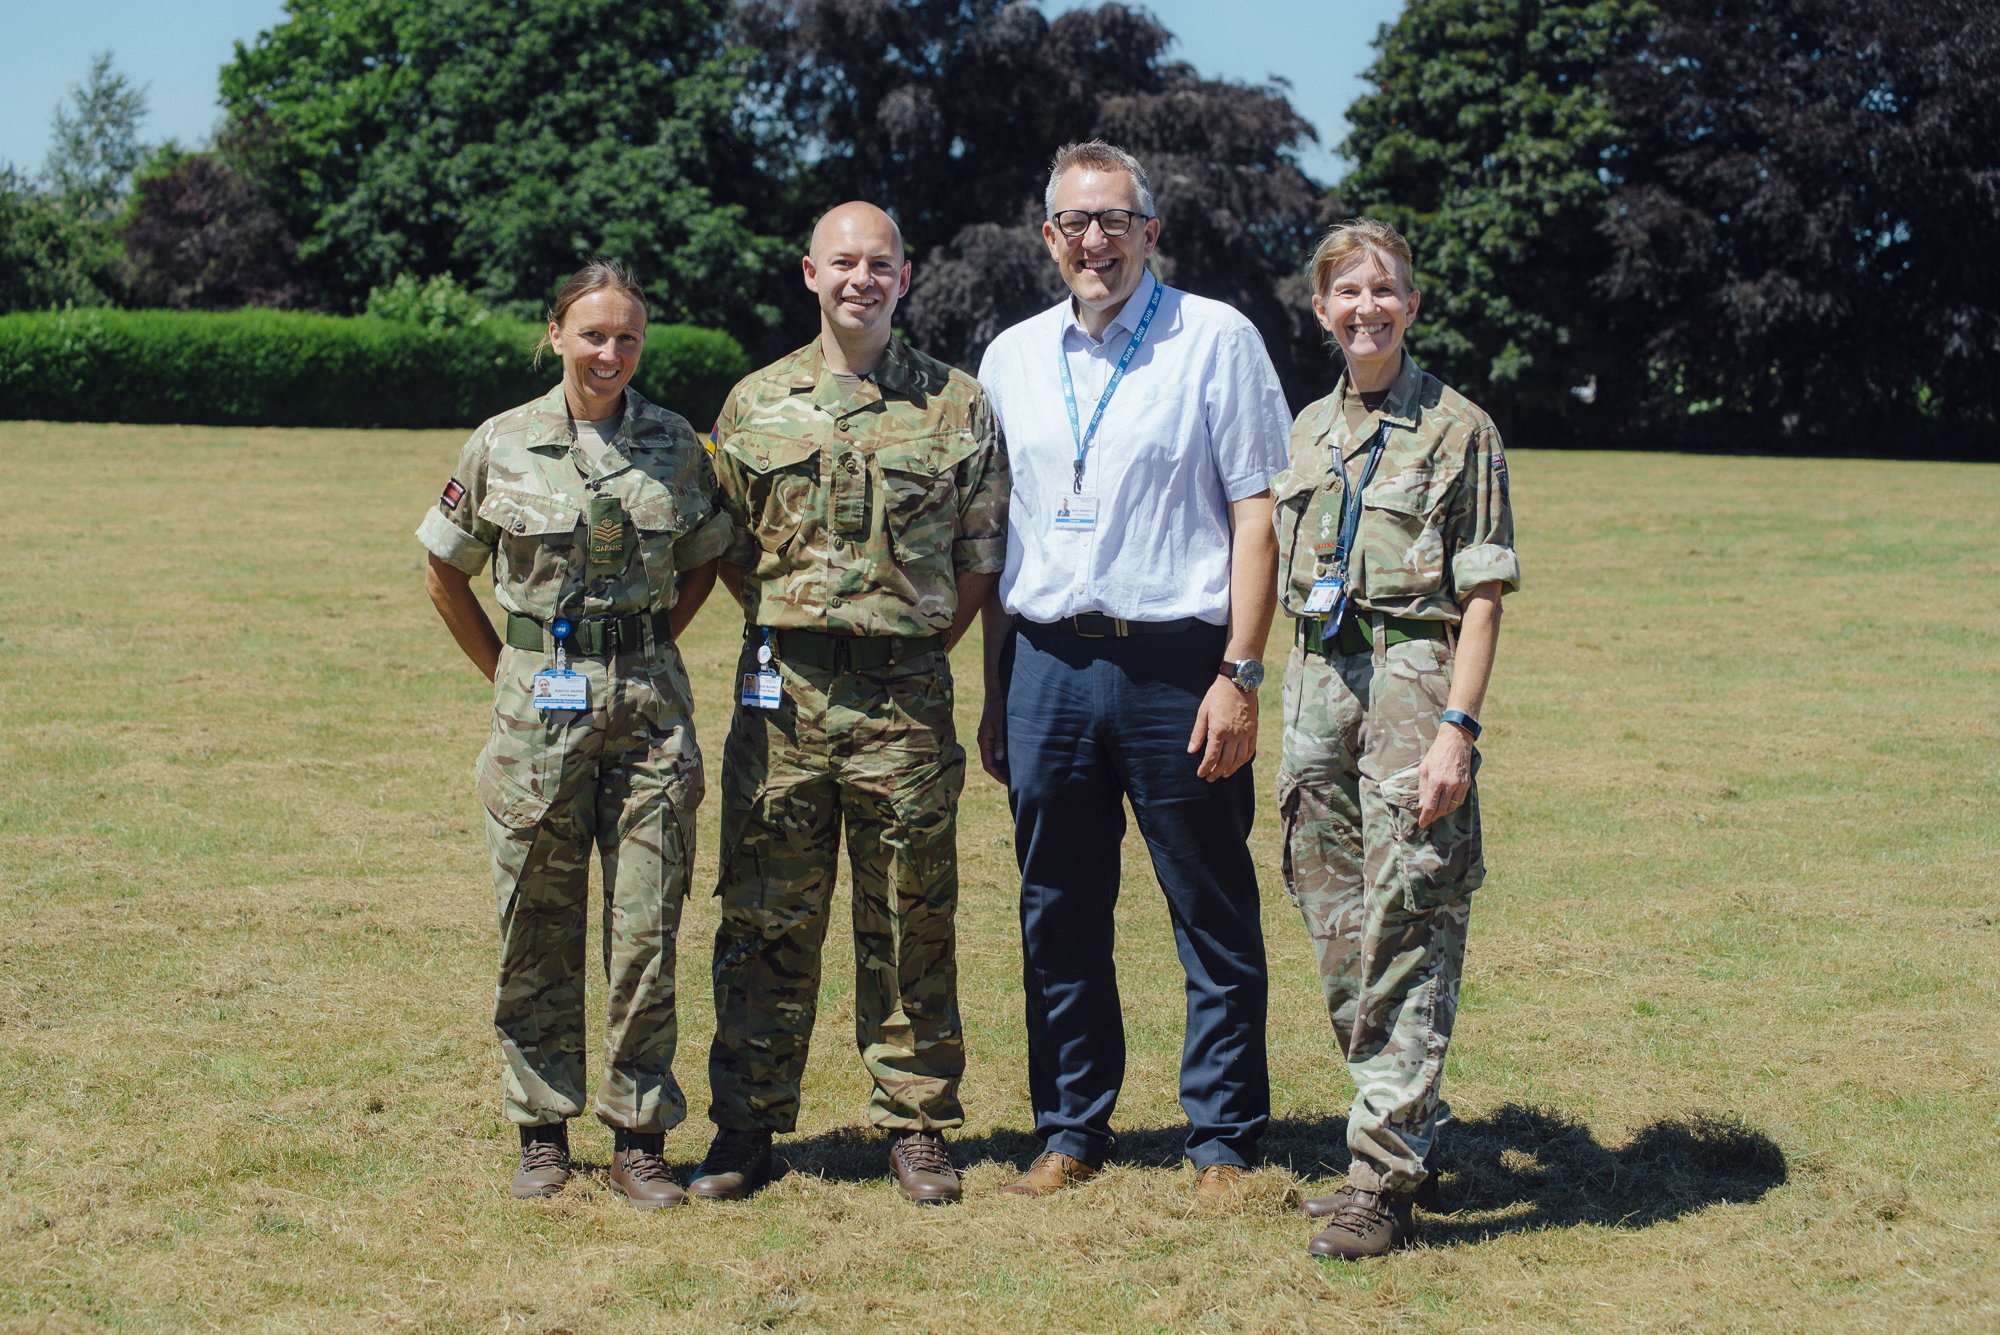 Chief Executive Mark Brandreth with RJAH reservists (from left) Rebecca Warren, Louis McDonald and Maggie Durrant. Rebecca and Louis serve with the 202 (Midlands) Field Hospital, while Maggie is Commanding Officer of the Medical Operational Support Group.